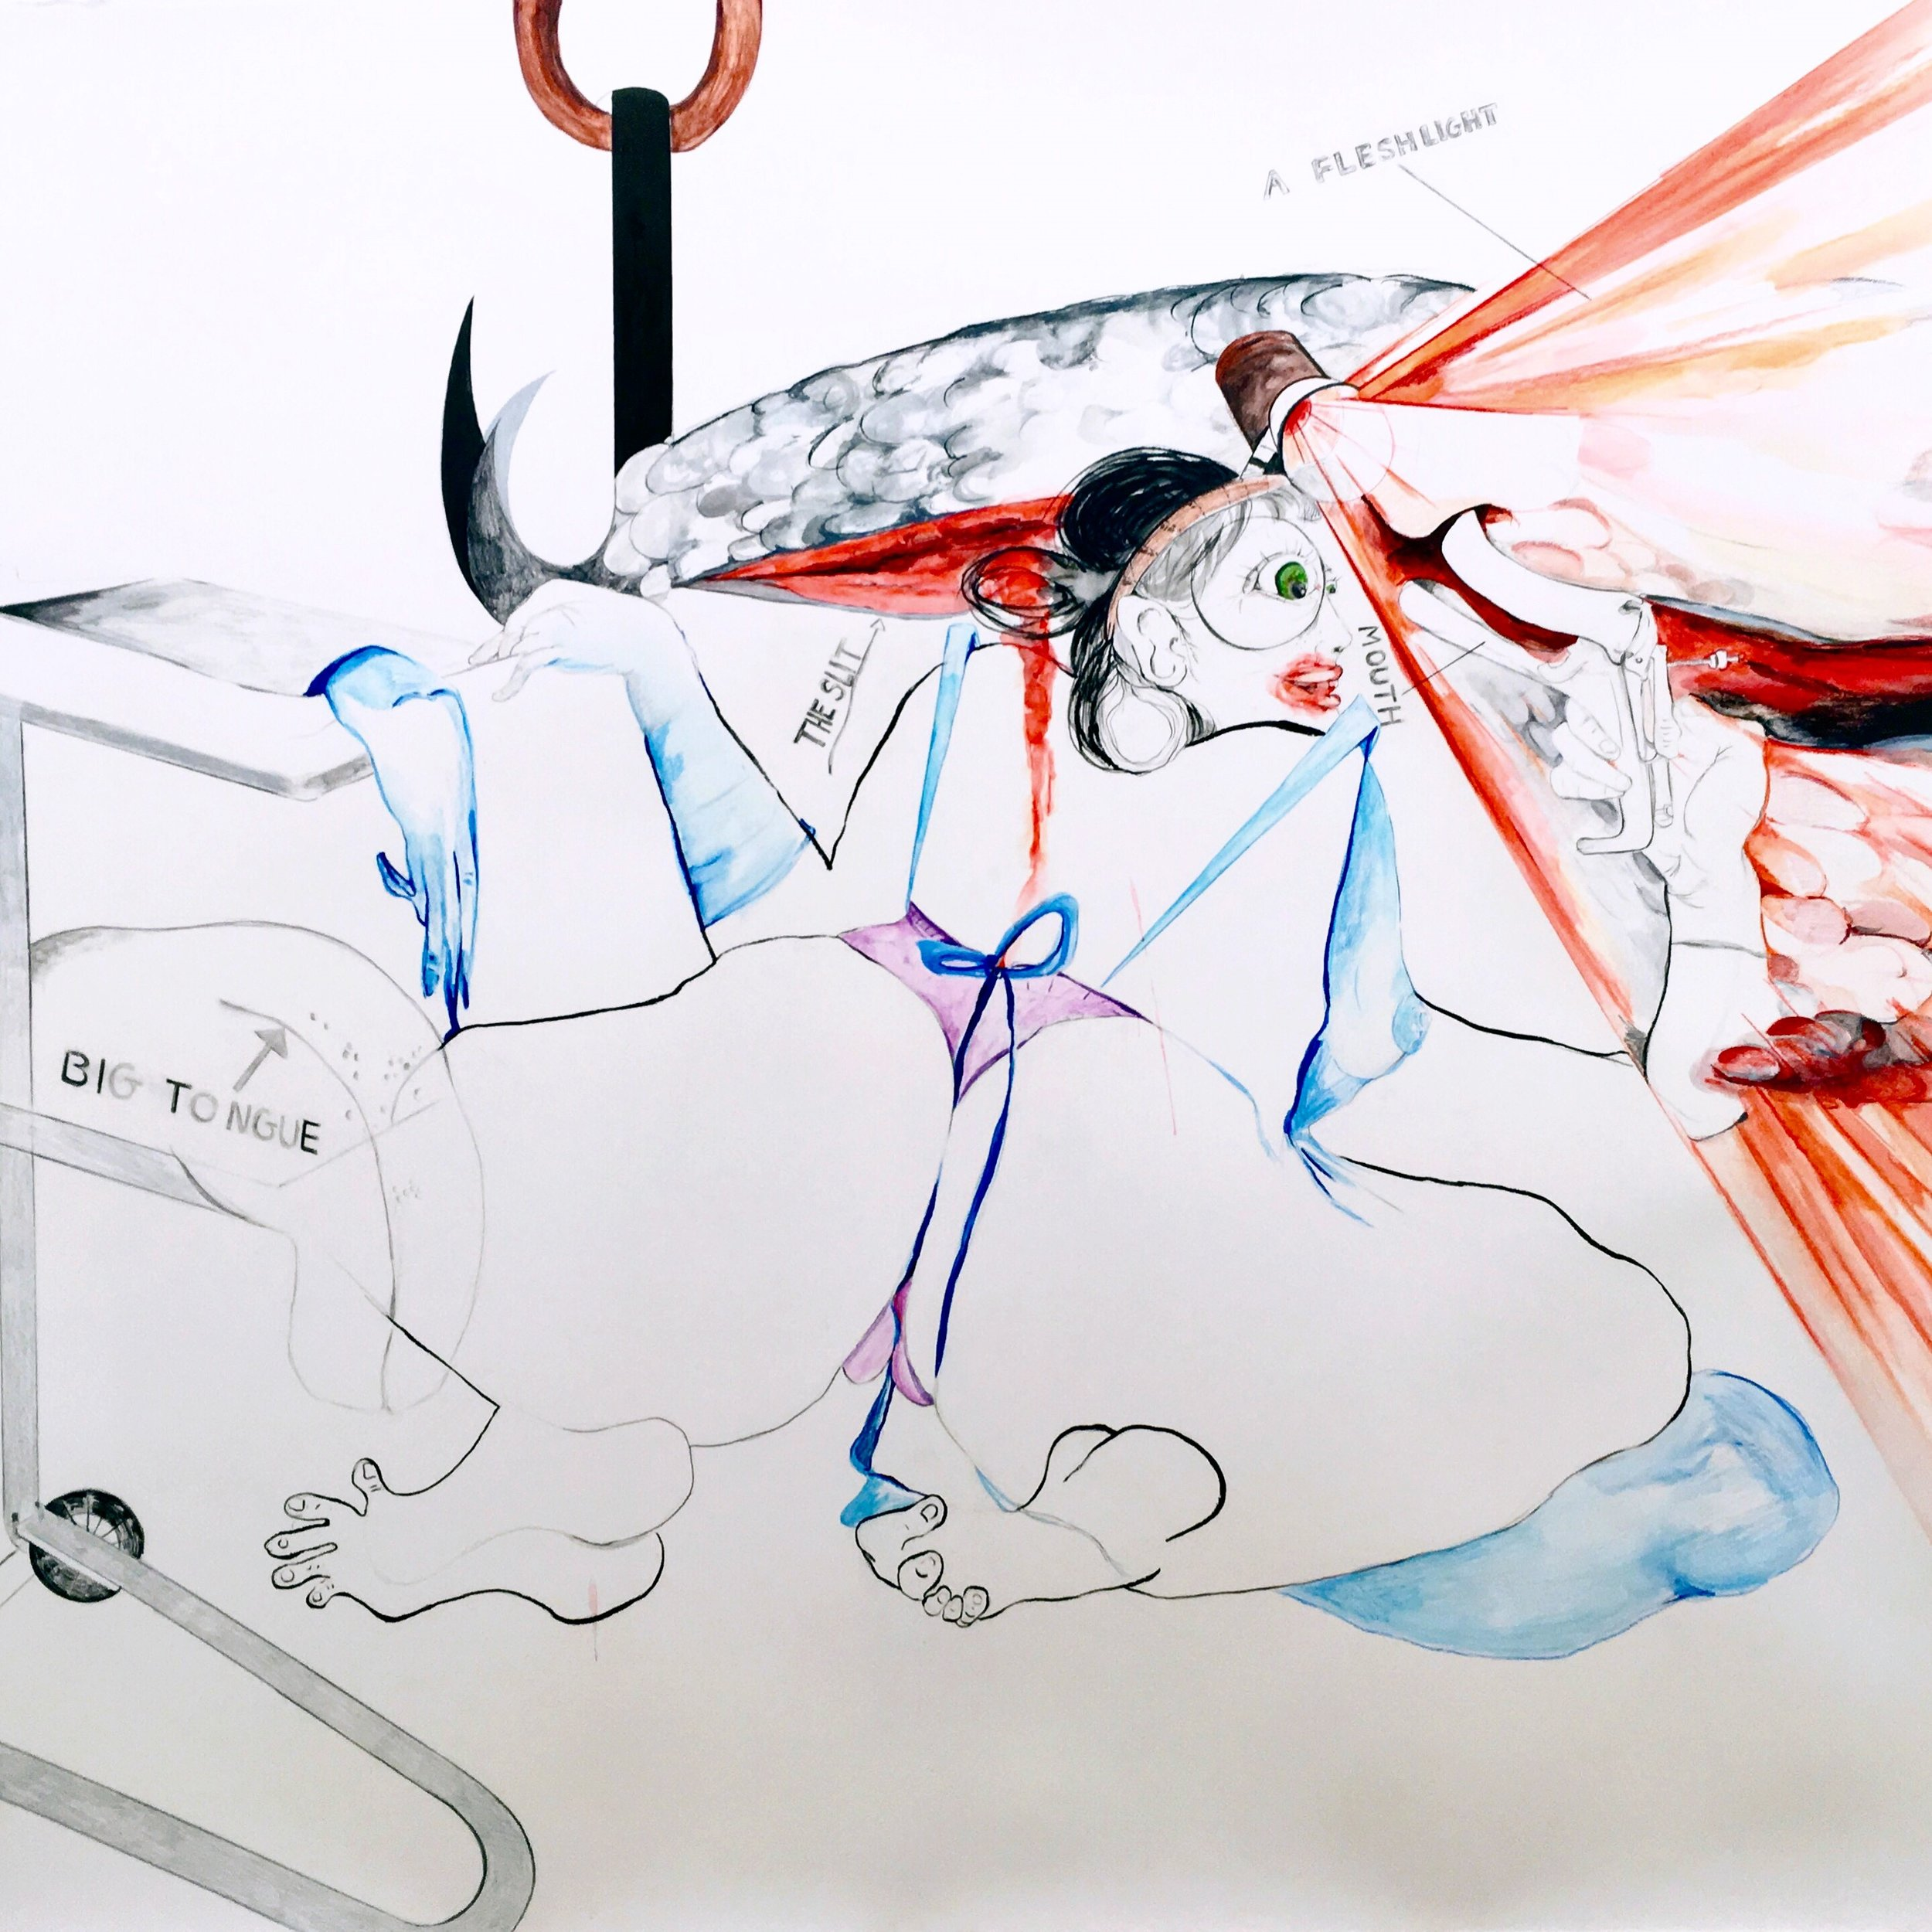 Sarah Mihara Creagen, Kiss the Chef , 51 x 64 inches, watercolour on paper, 2019